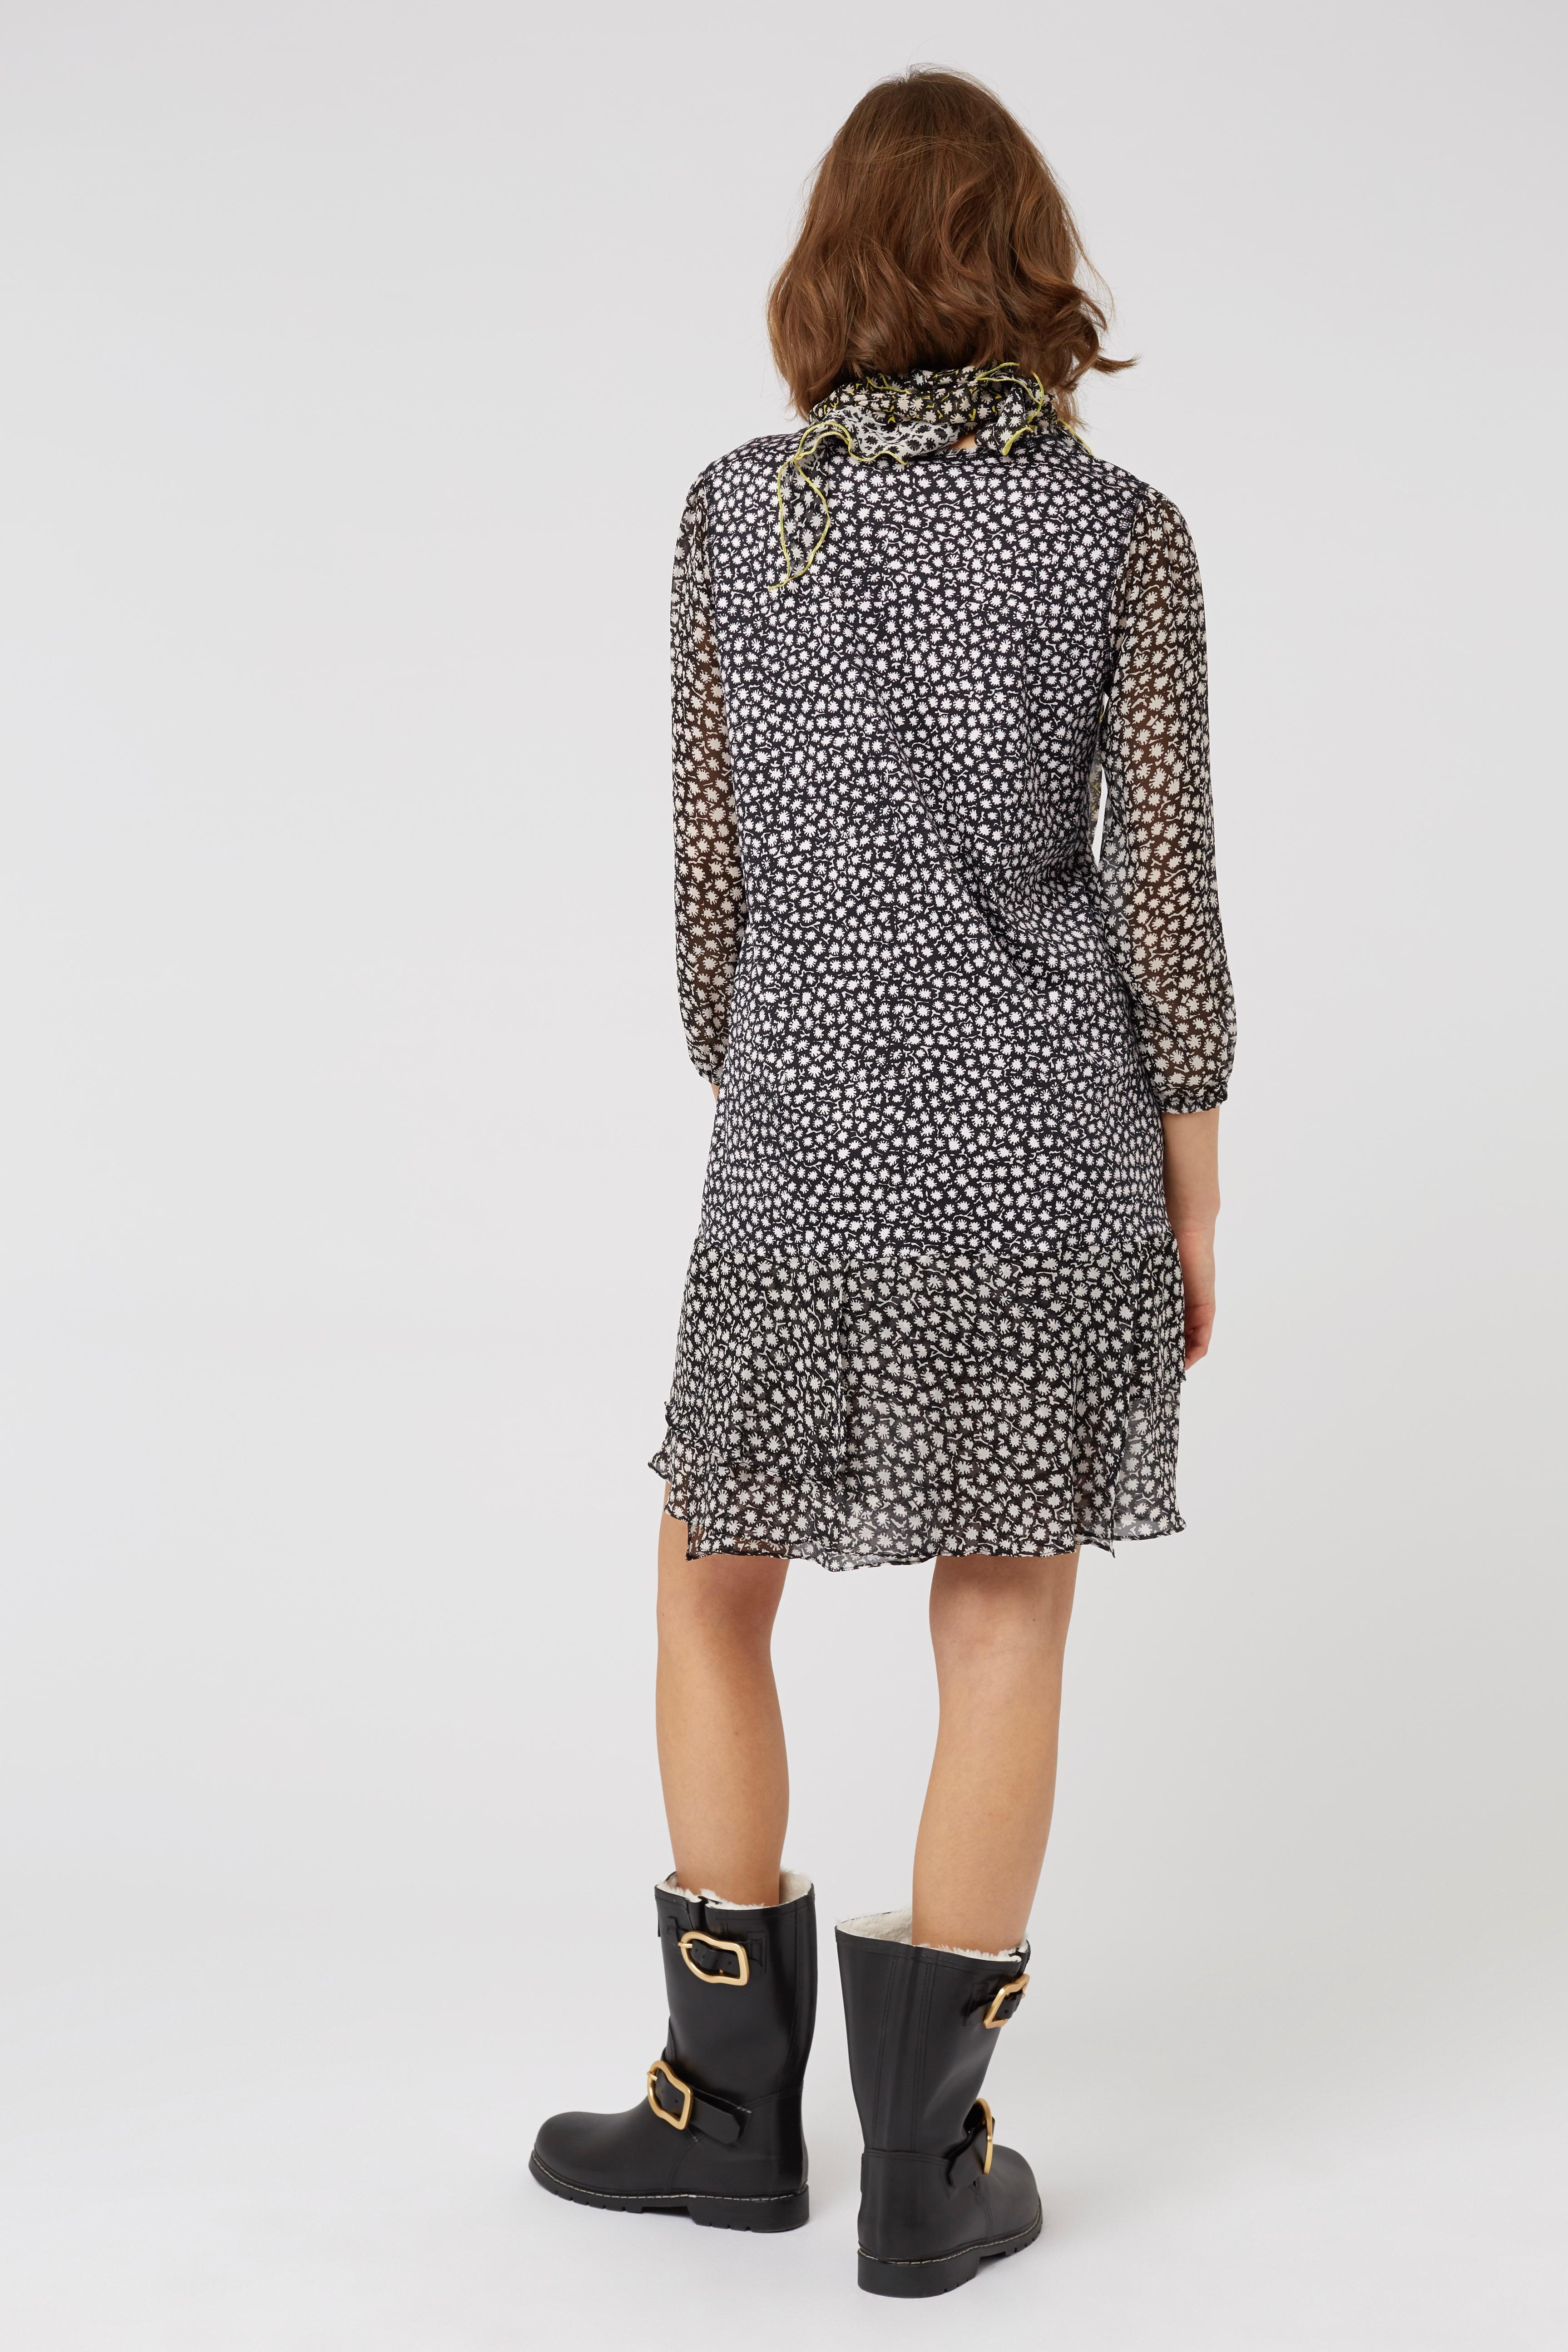 PUNKY PATCH dress o-neck 3/4 2 Dorothee Schumacher Clearance Footaction Shop Cheap Price 0JJf8f5F